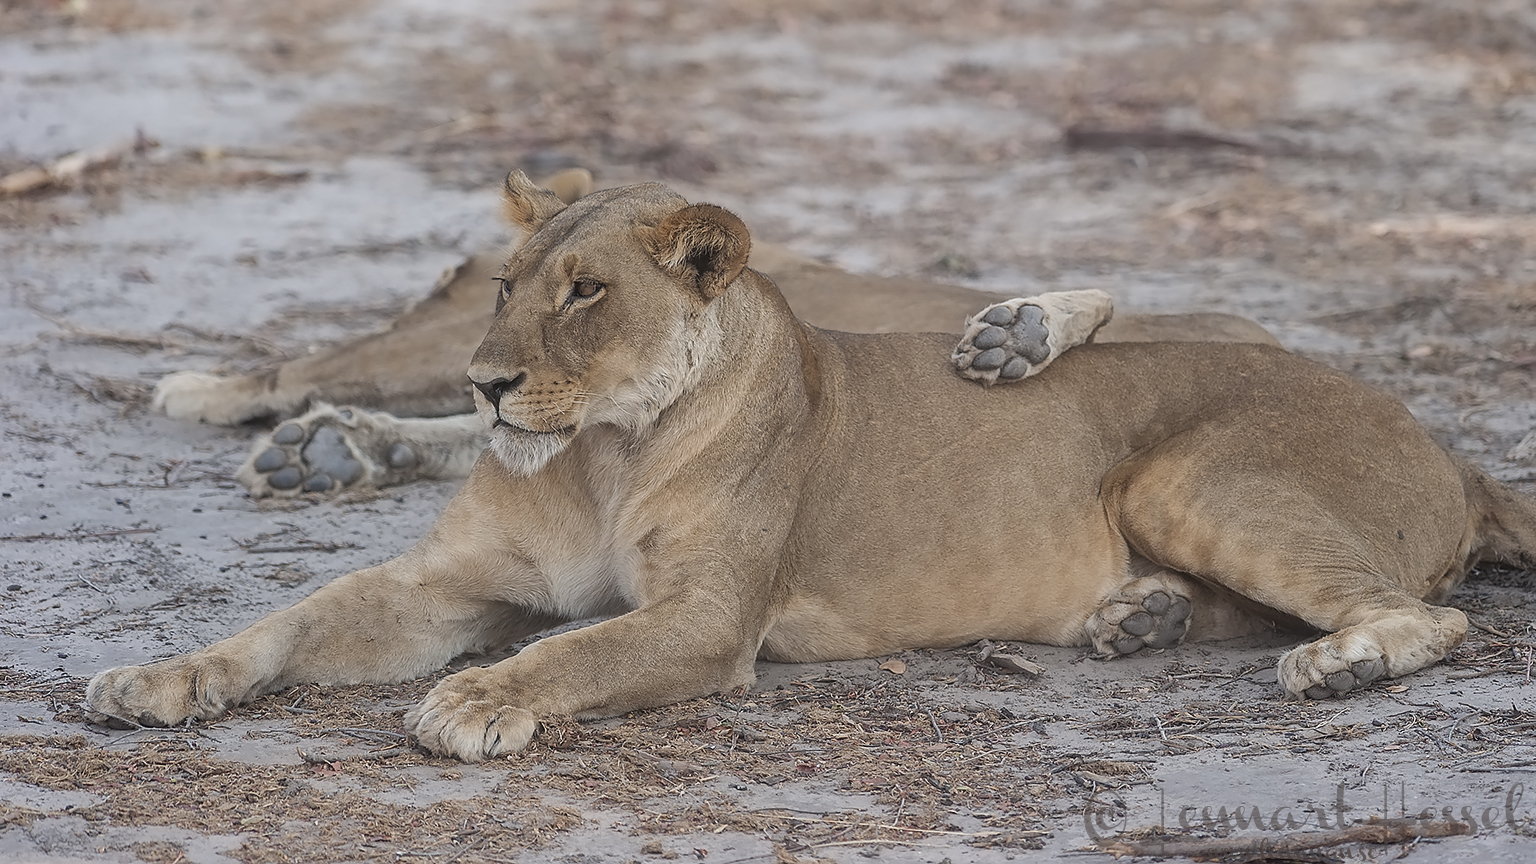 Tired Lionesses on the road from Savuti to Chobe river, Botswana